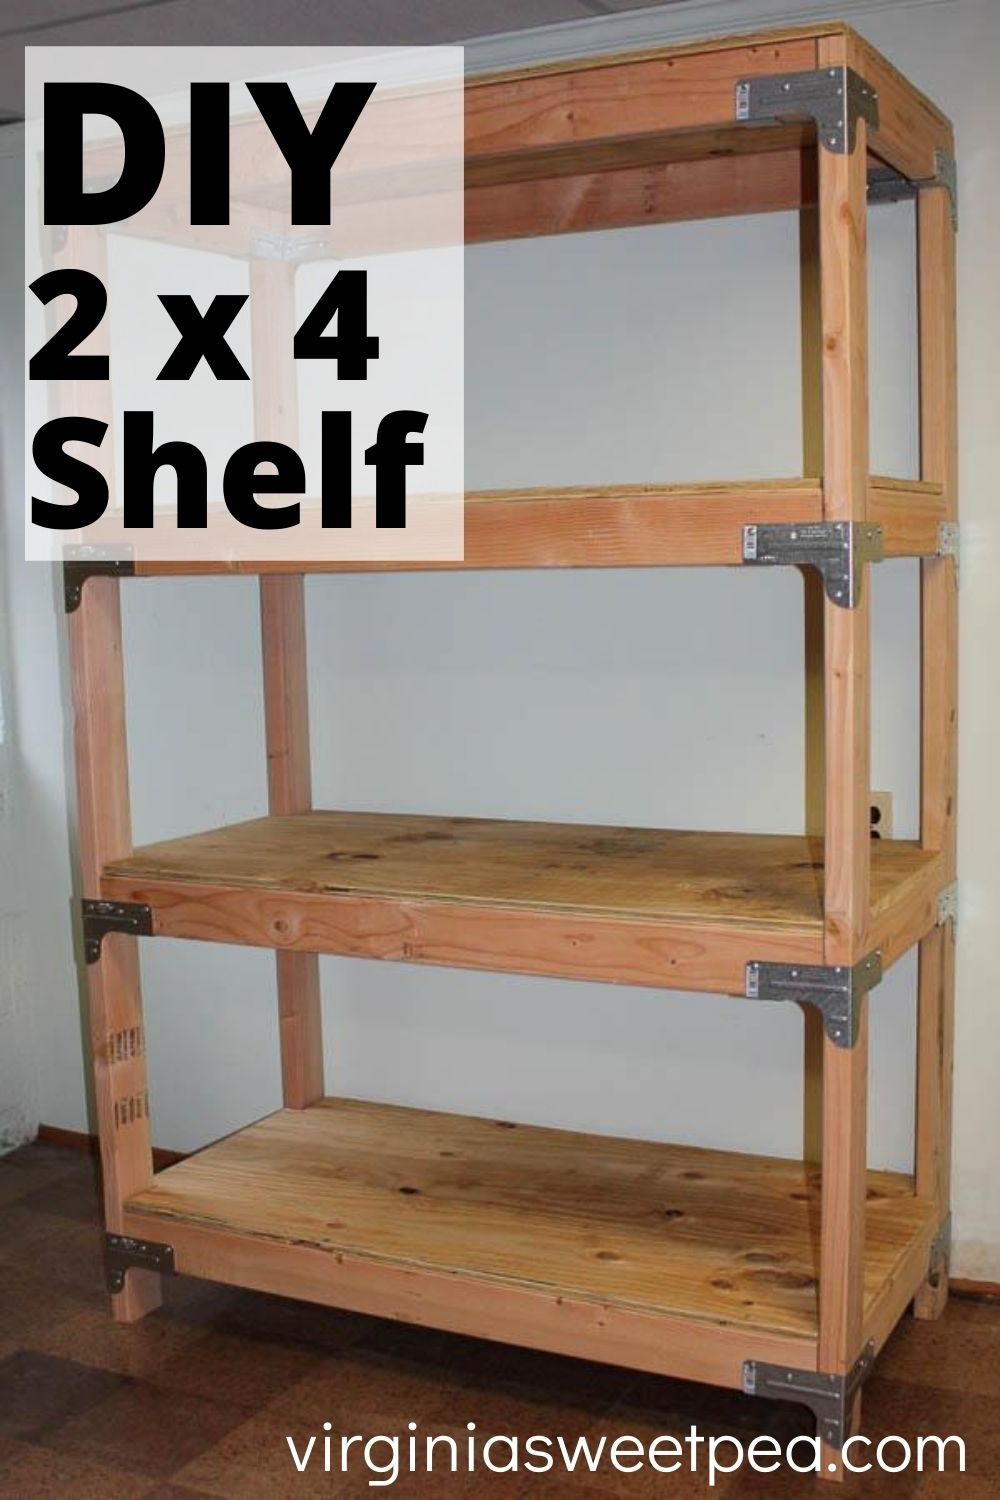 DIY 2x4 Shelf - Learn how to make a super handy shelving unit with plyboard and 2x4 lumber.  This is great for a garage, basement, or shed.  #2x4project #diyshelves #diyshelvingunit via @spaula